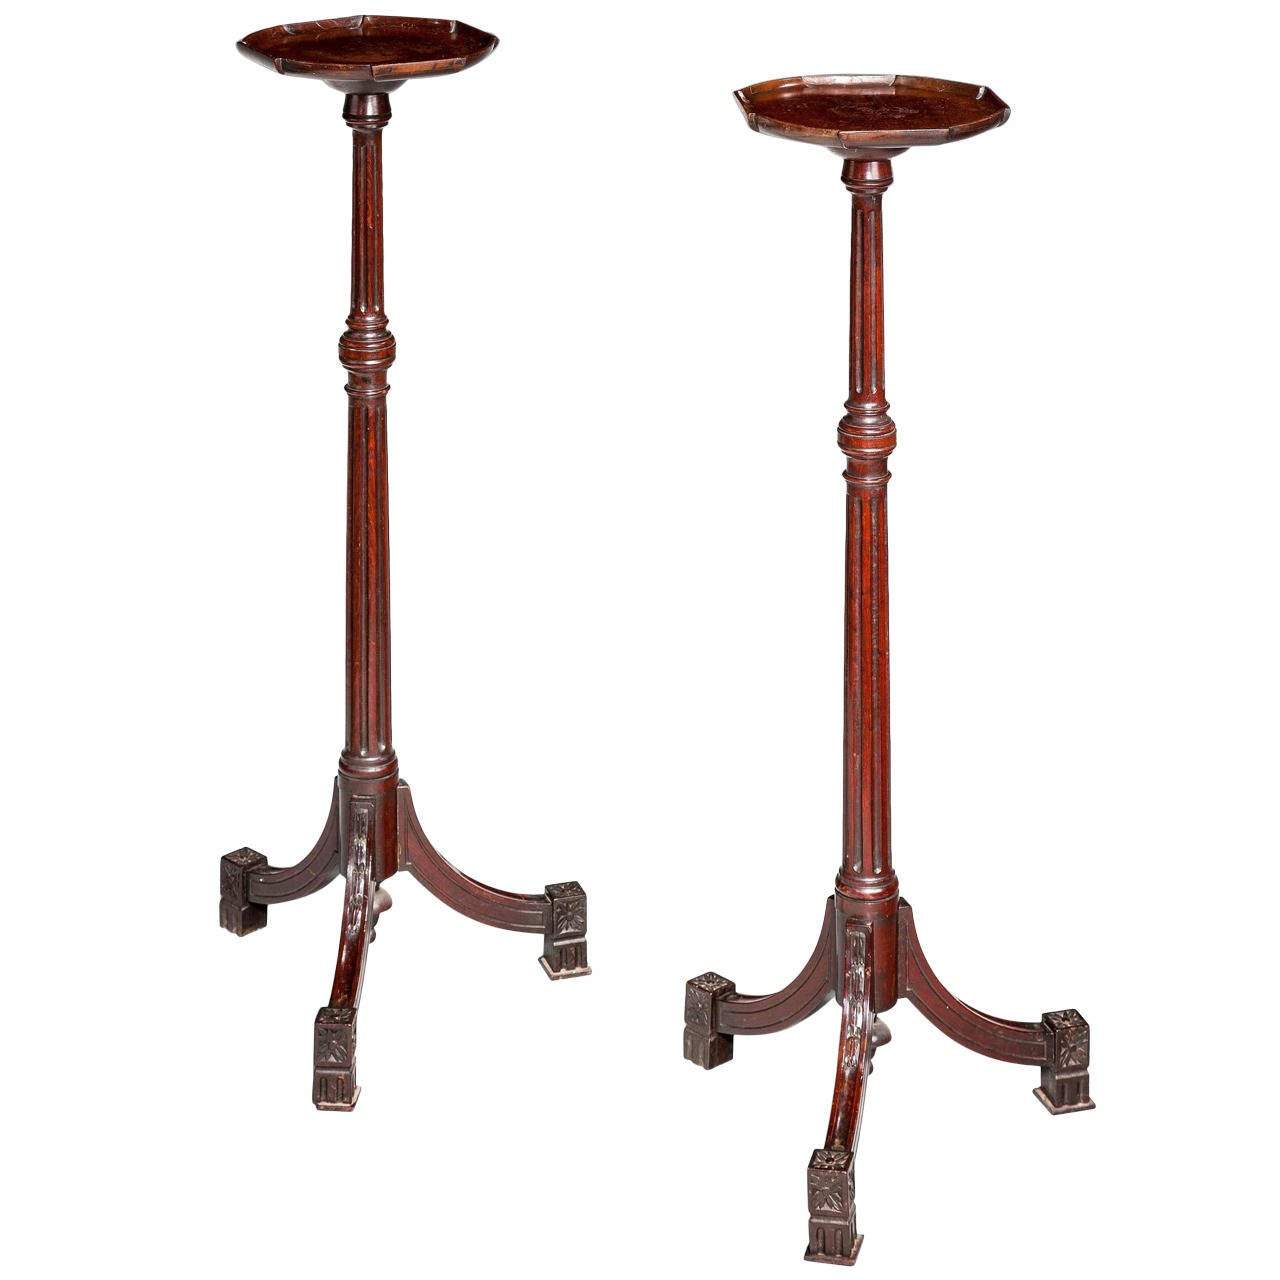 Pair of Regency Period Mahogany Torchère